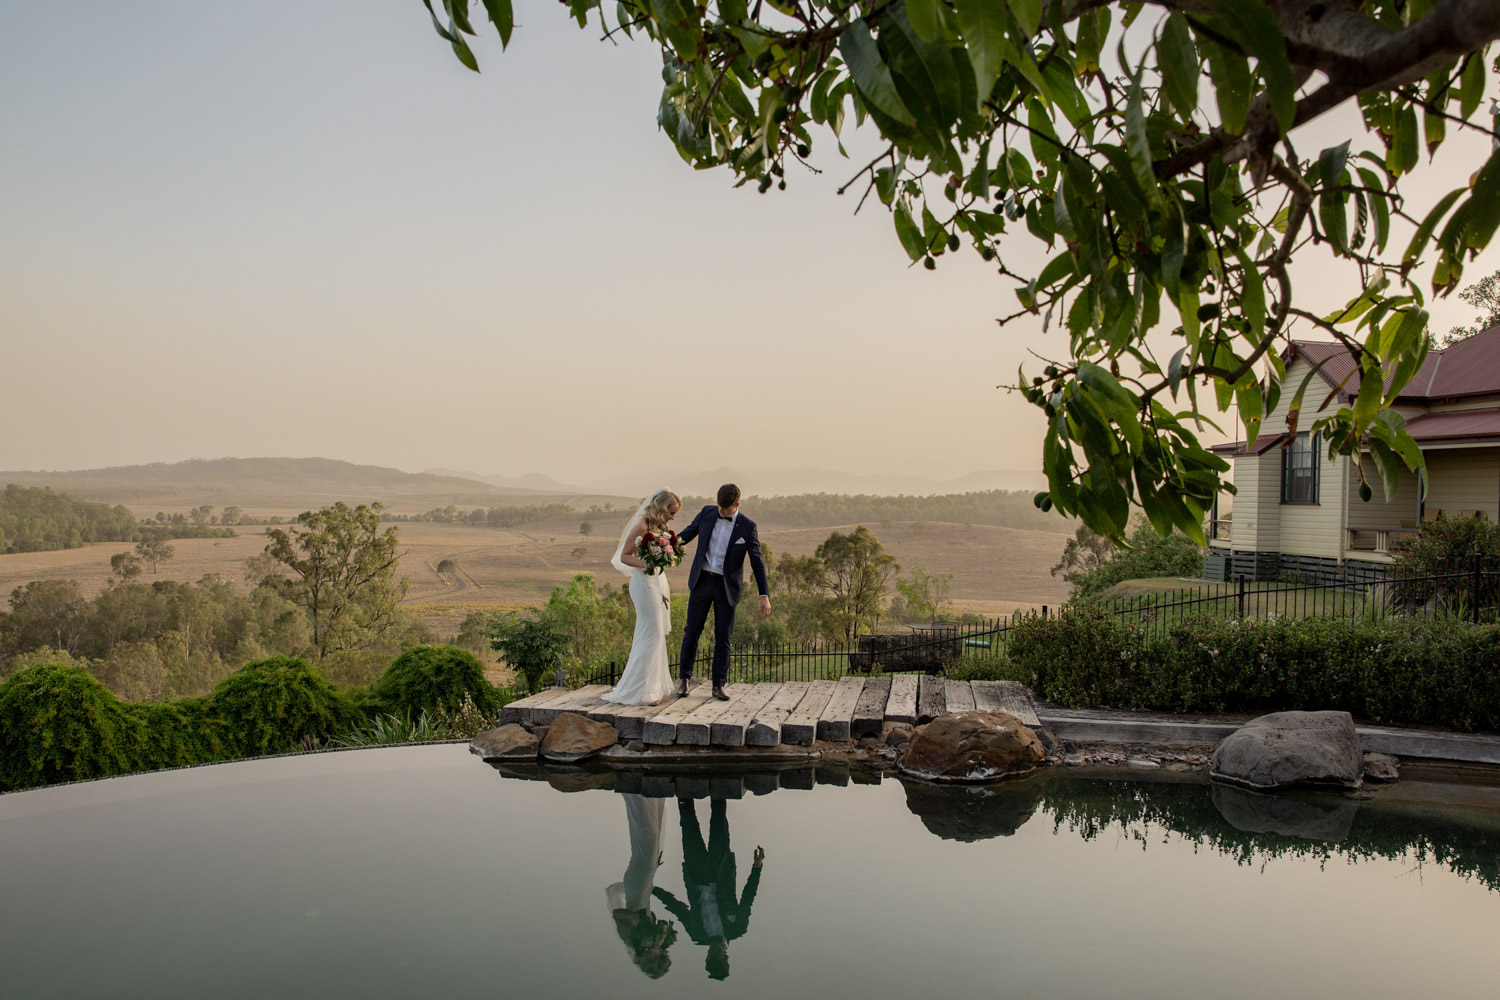 sunset-natural, fun, romantic-wedding-photography at Spicers-hiddenvale-QuinceandMulberryStudios